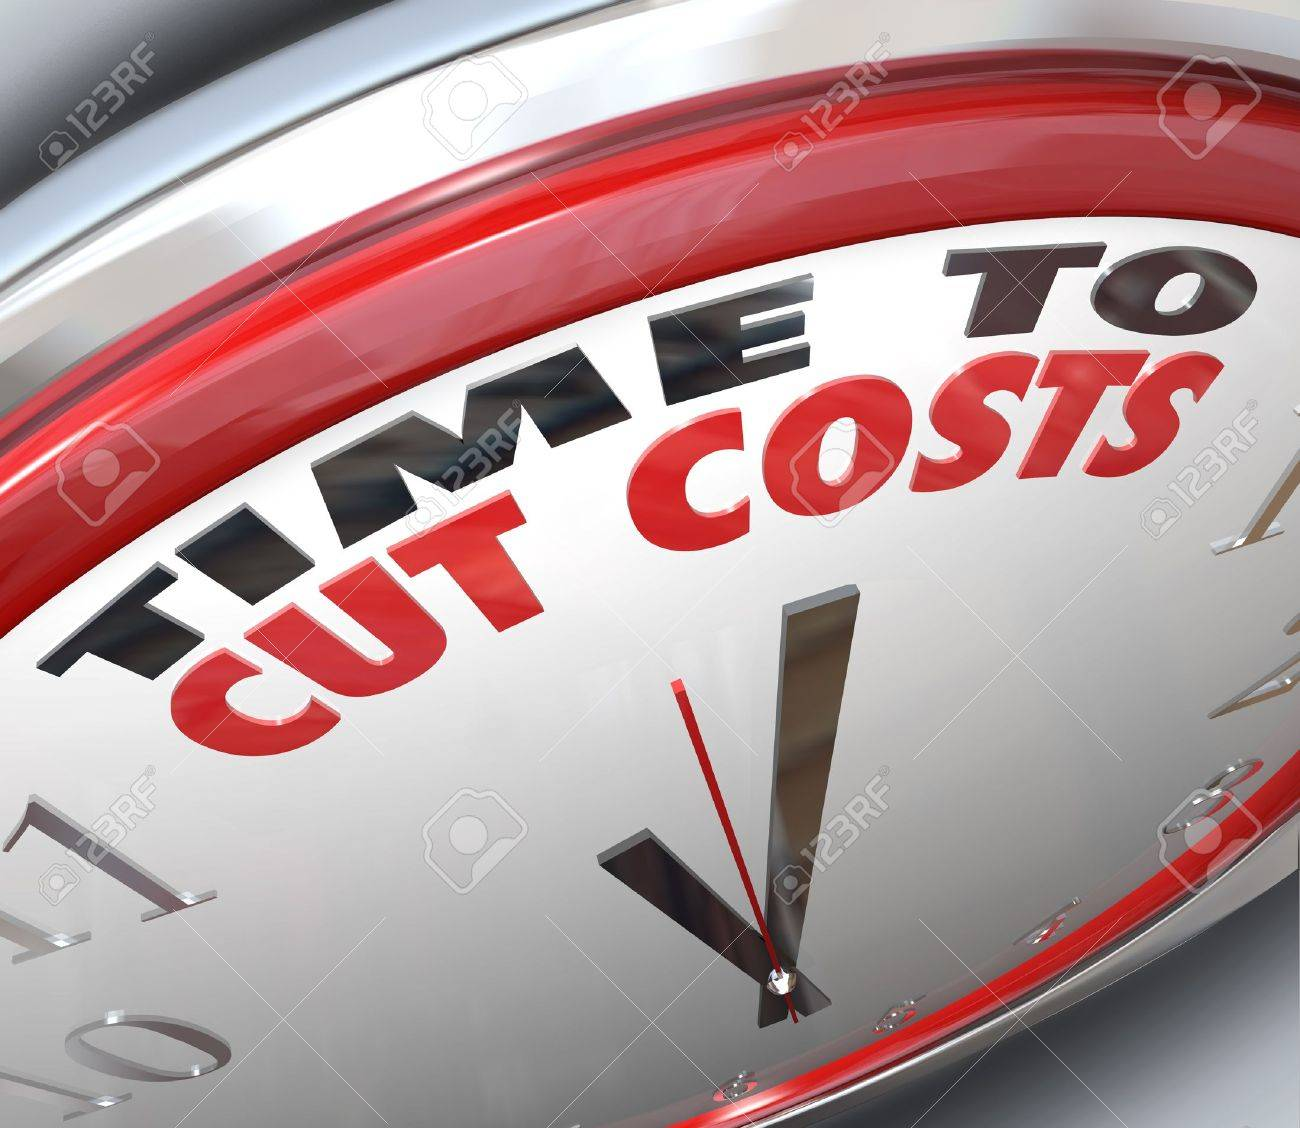 Watch your spending and reduce your overhead by paying attention to this clock telling you it is Time to Cut Costs and get your budget in order before you are in debt or bankrupt - 13562438